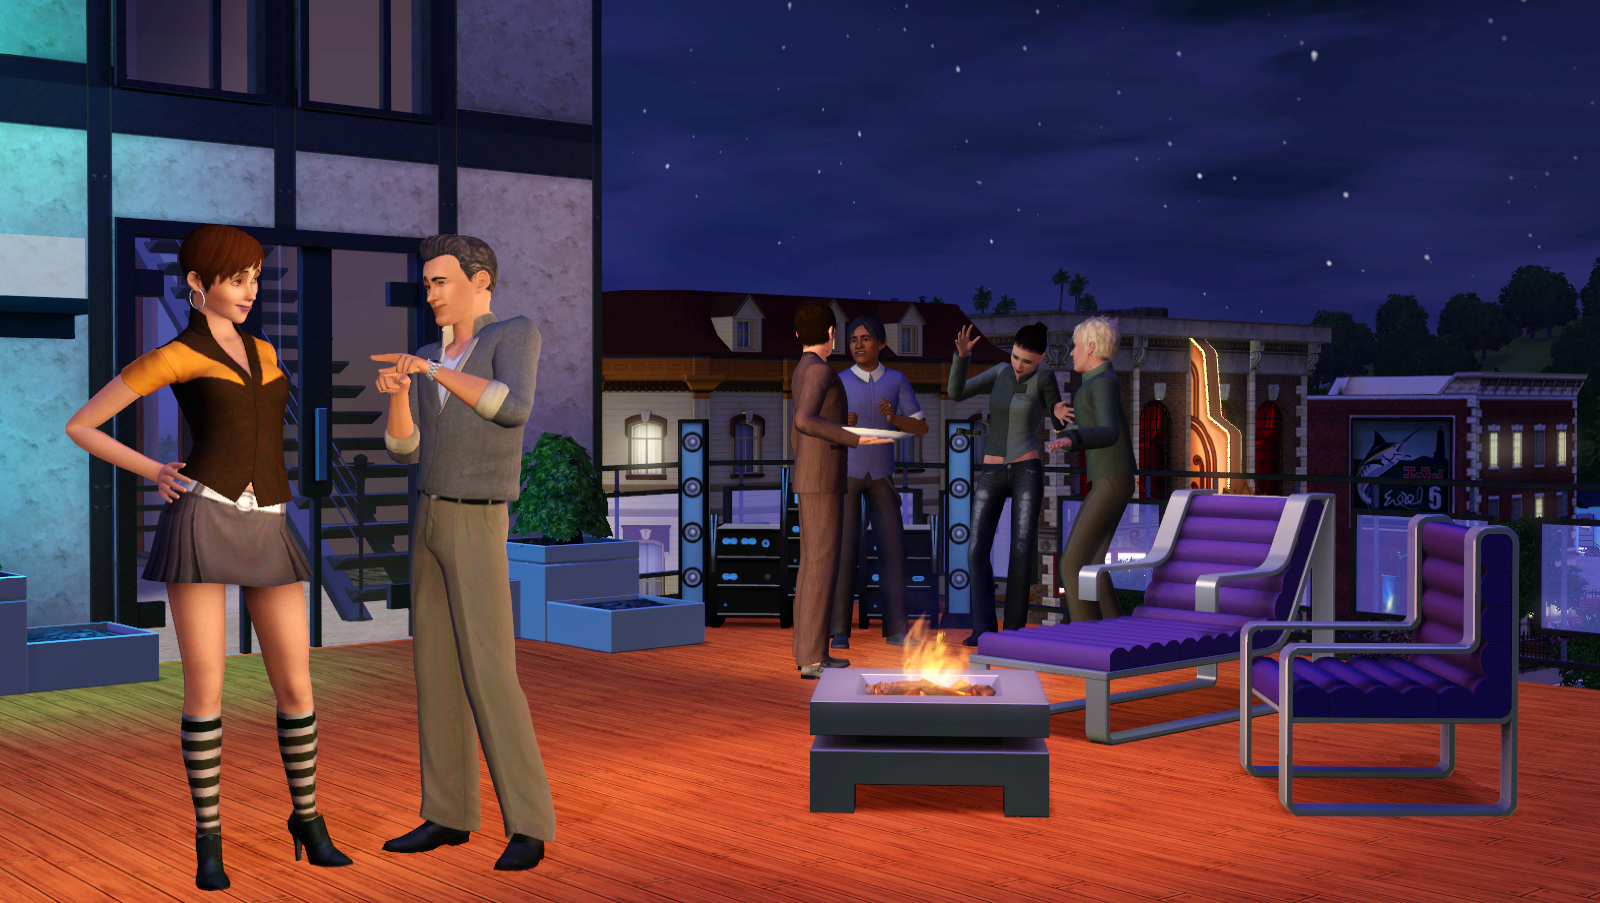 Websites To Download Sims 3 Stuff For Free